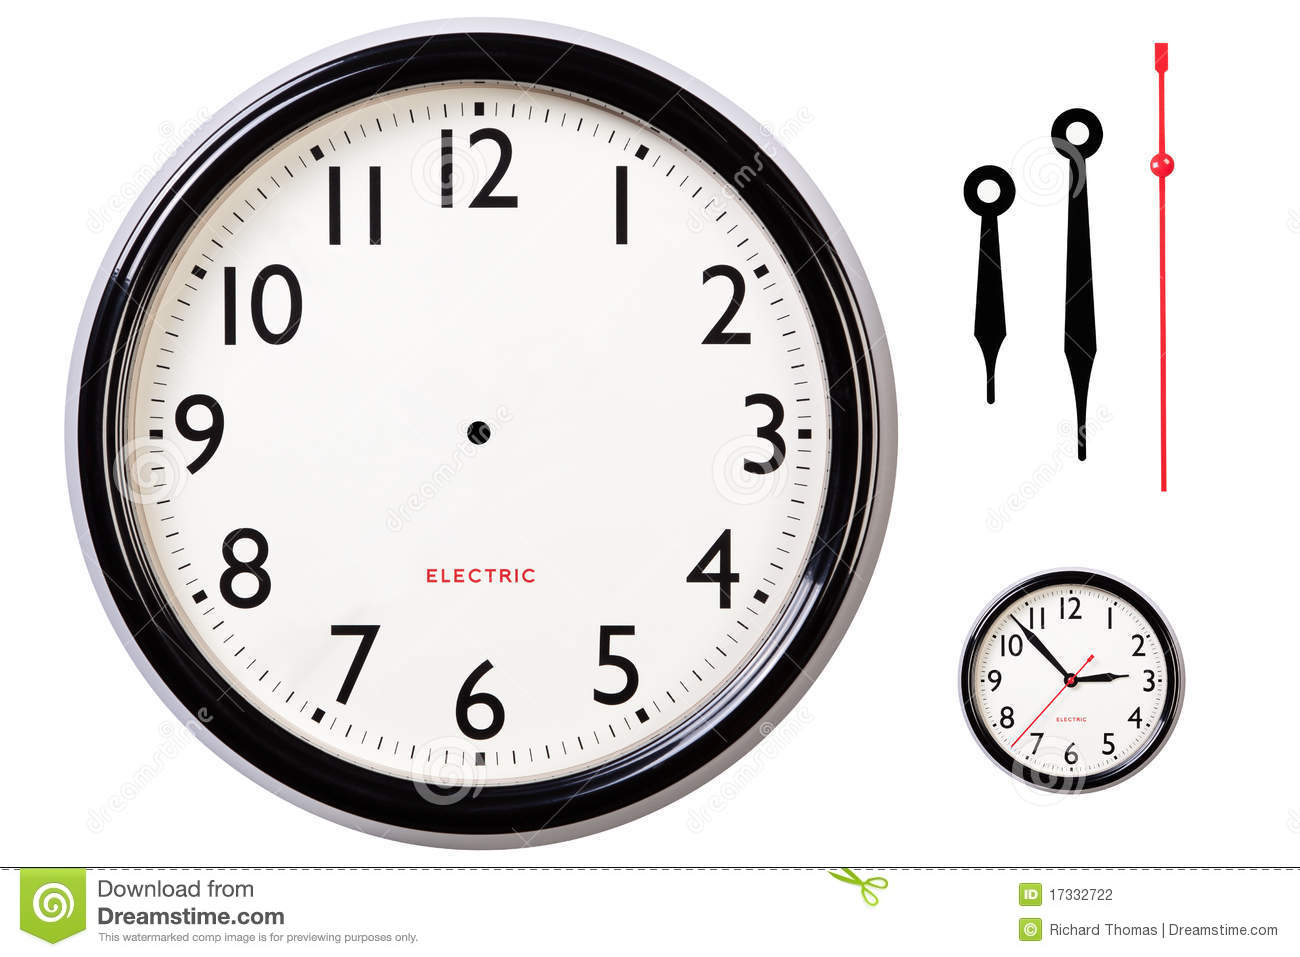 photograph relating to Printable Clock Face With Hands called Blank clock experience and palms inventory picture. Impression of quantities